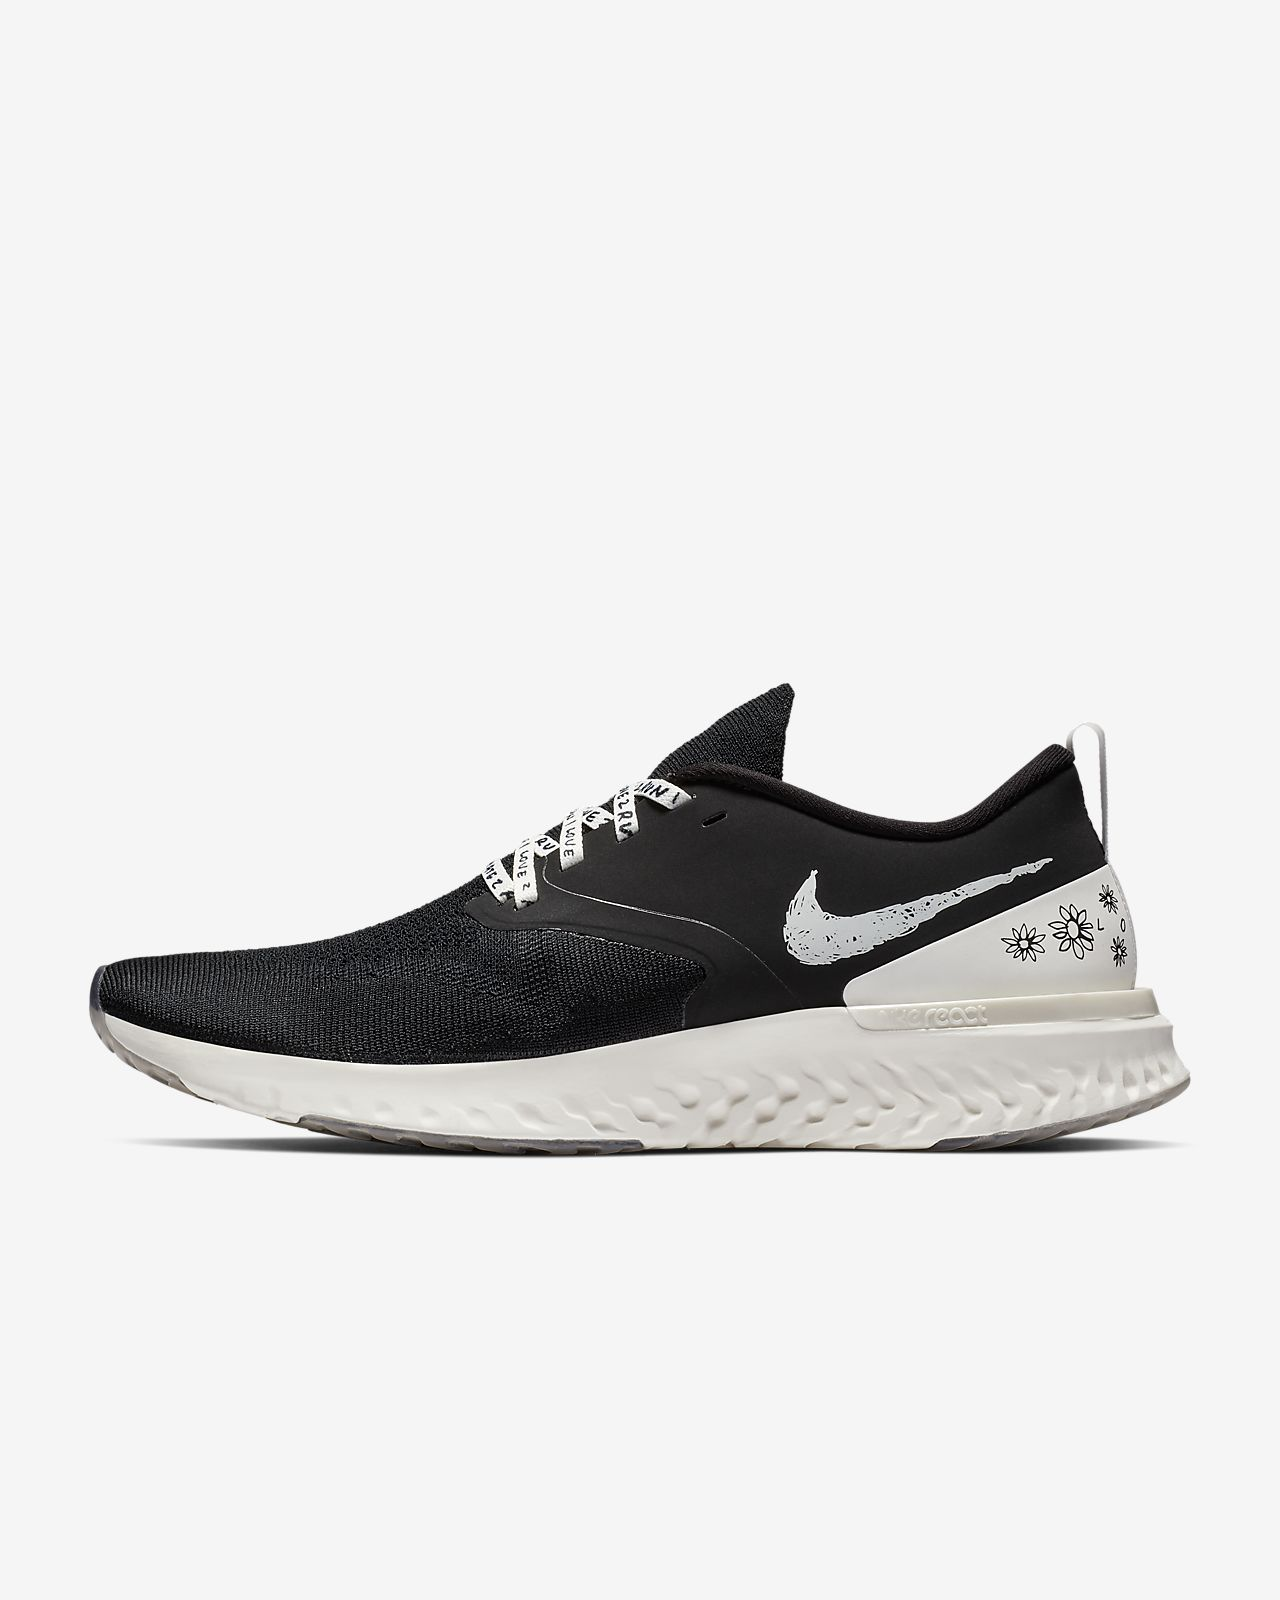 Nike Odyssey React Flyknit 2 Nathan Bell 男款跑鞋